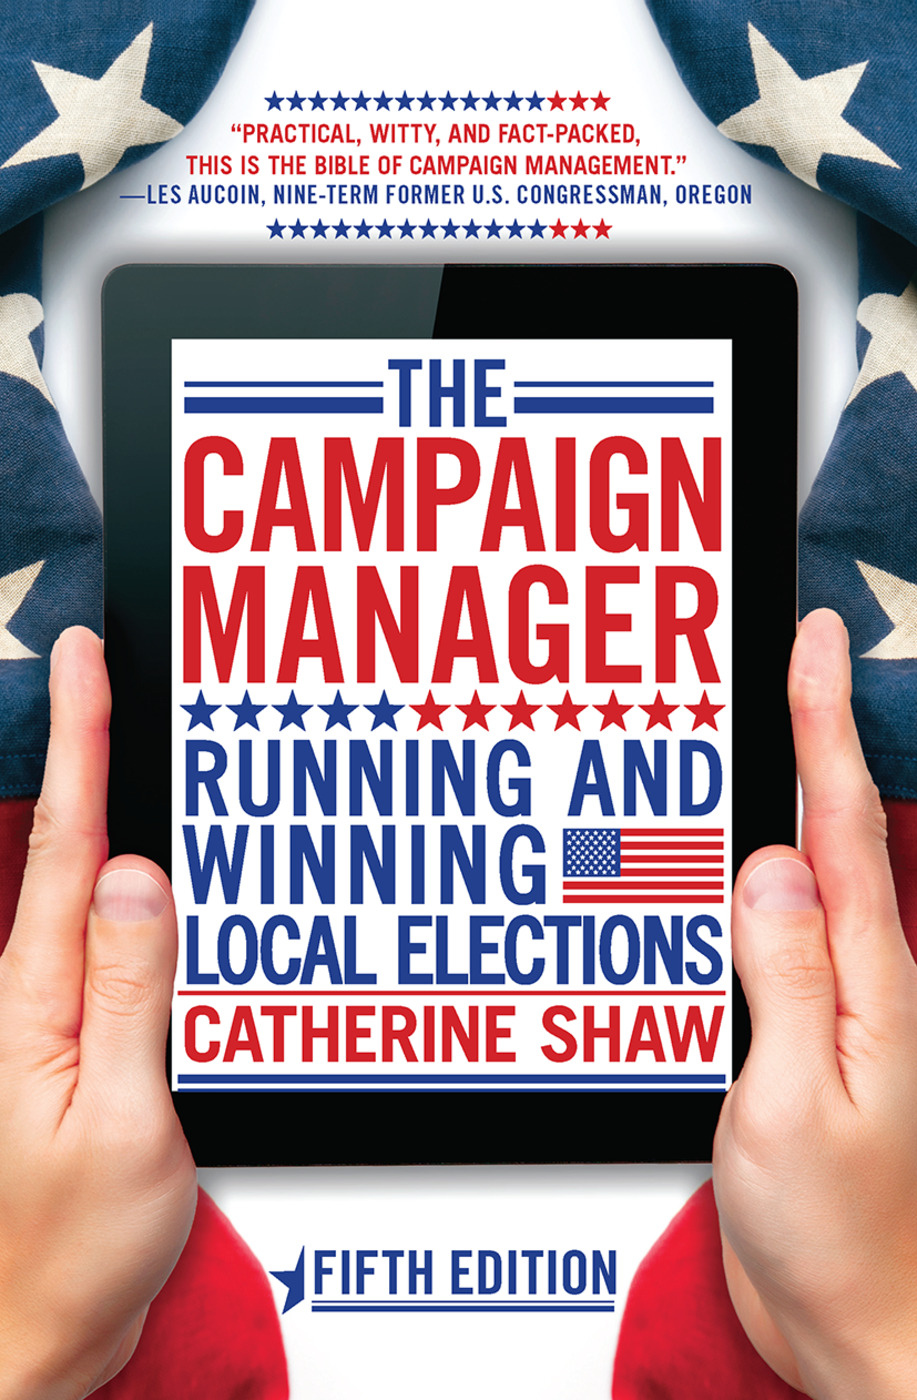 The Campaign Manager: Running and Winning Local Elections book cover